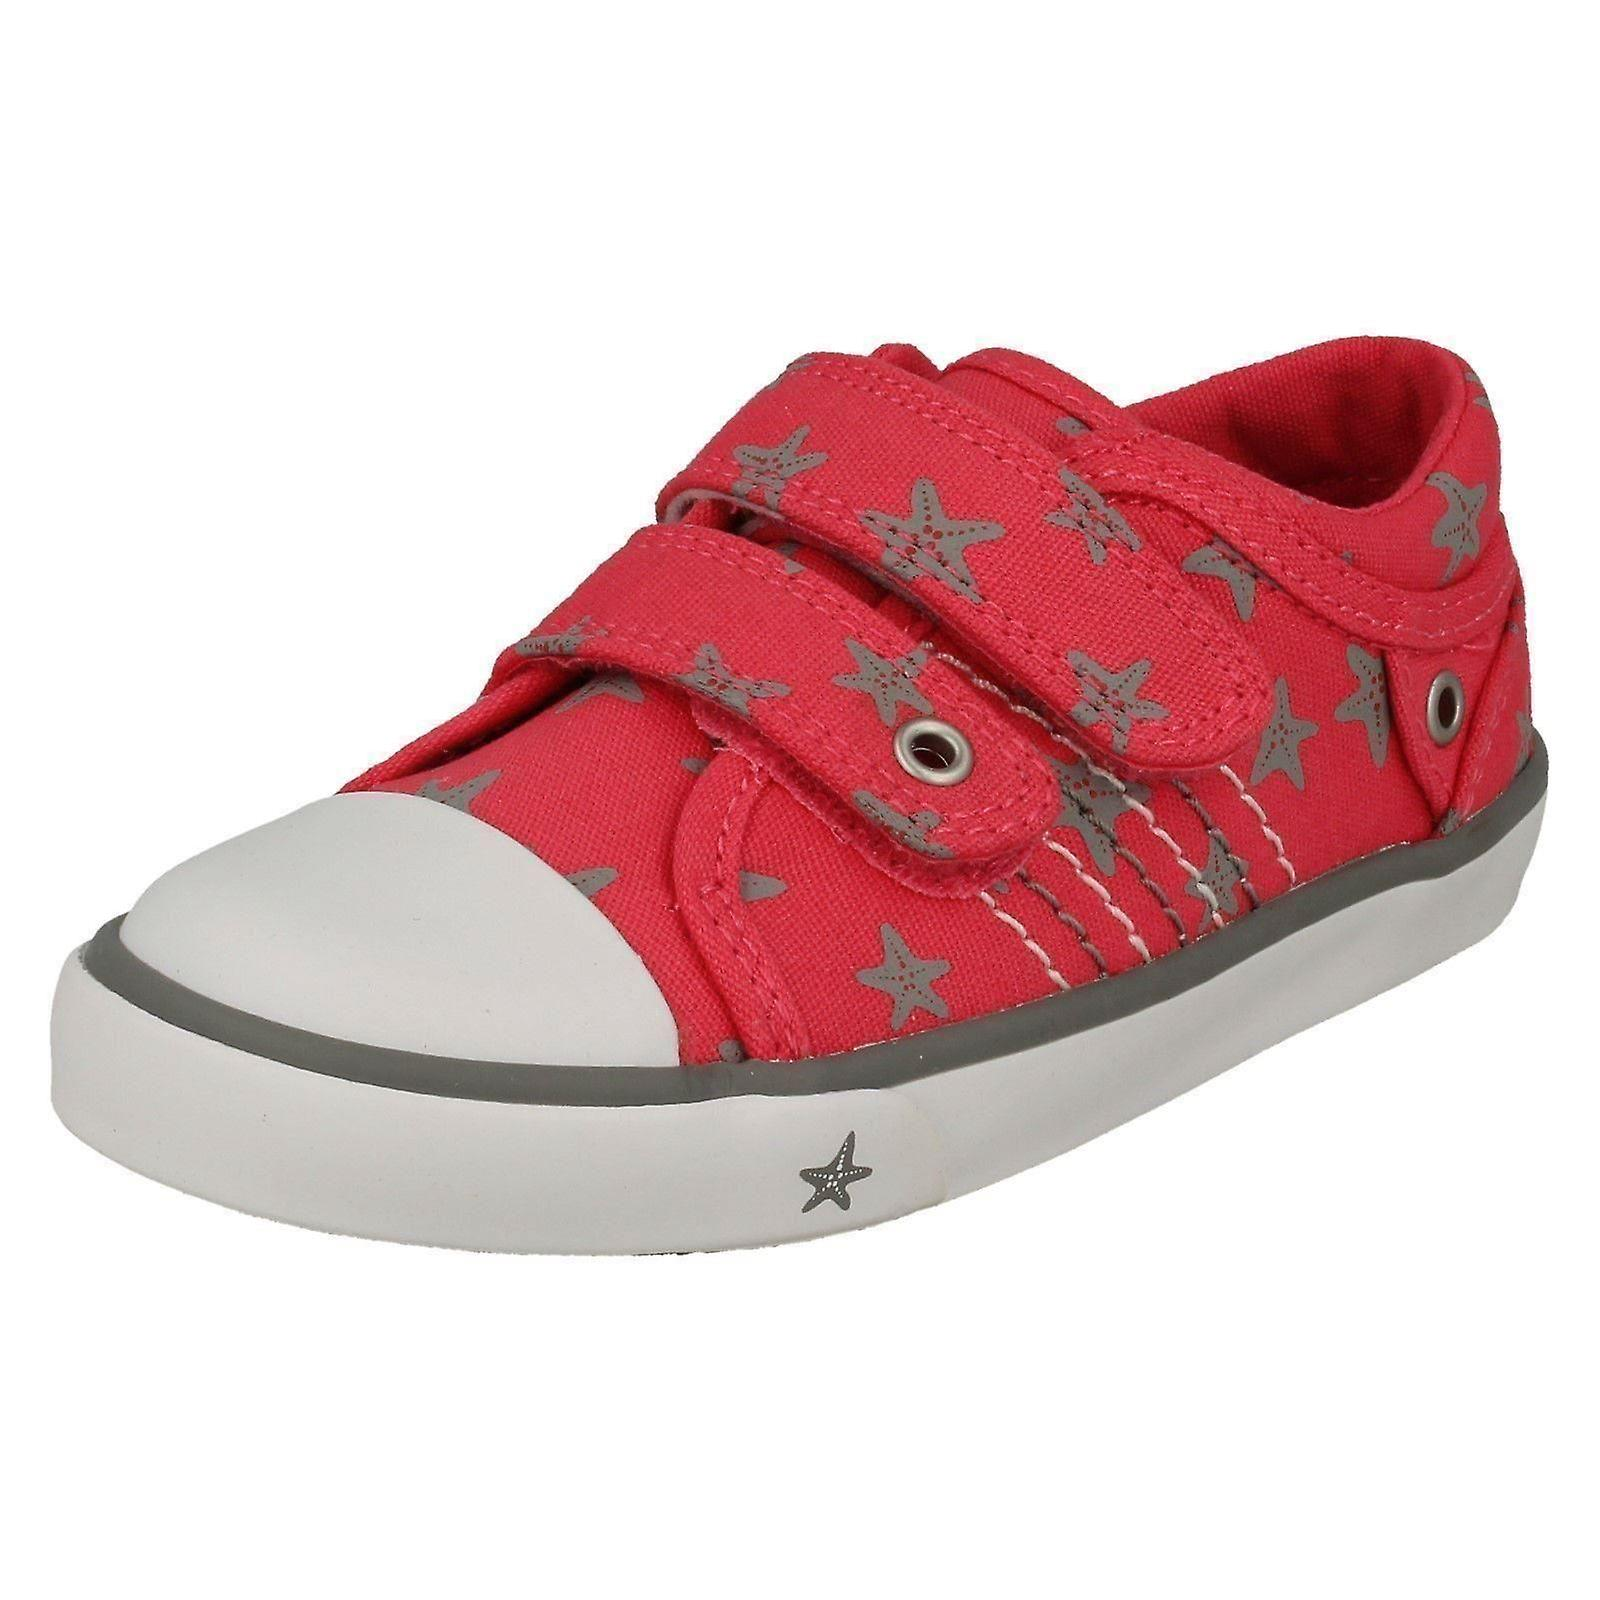 Childrens Boys/Girls Startrite Casual Shoes Zip - Pink Canvas - UK Size 95F - EU Size 275 - US Size 105